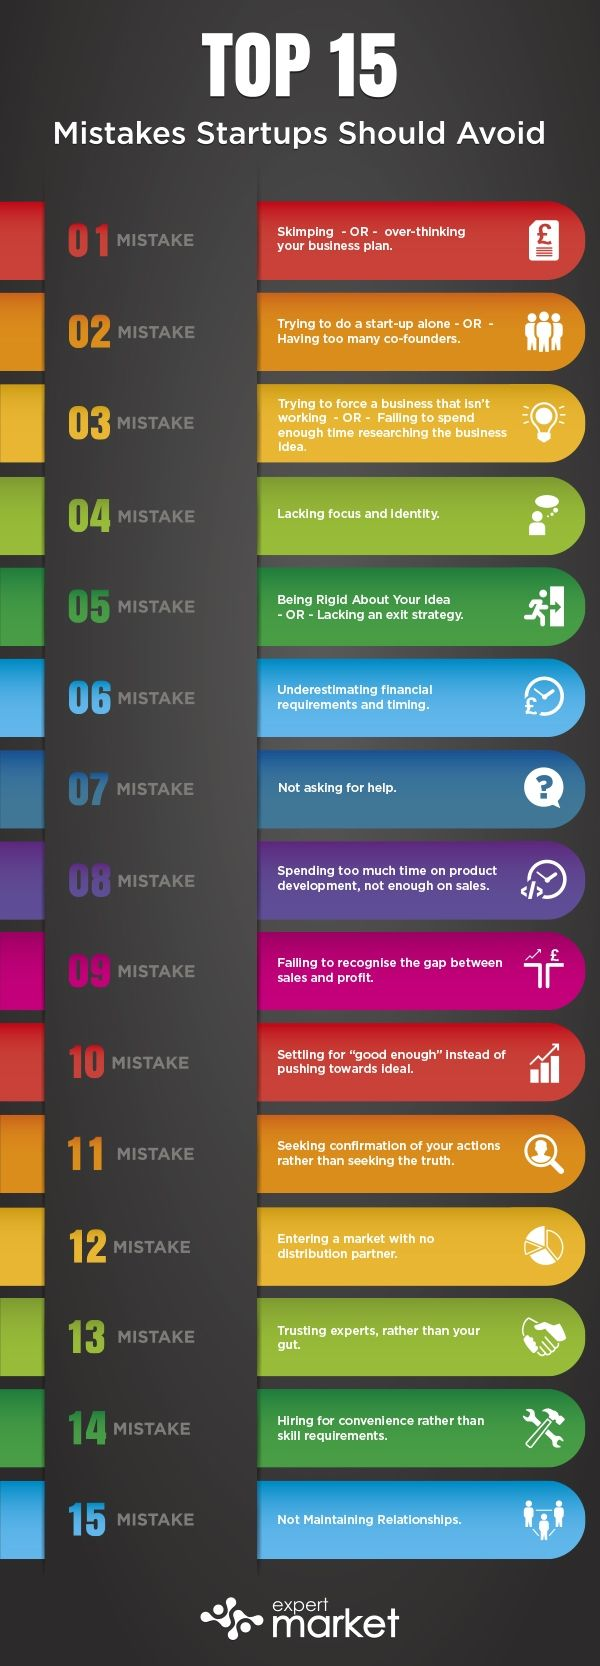 Top 15 Mistakes Startups Should Avoid #infographic